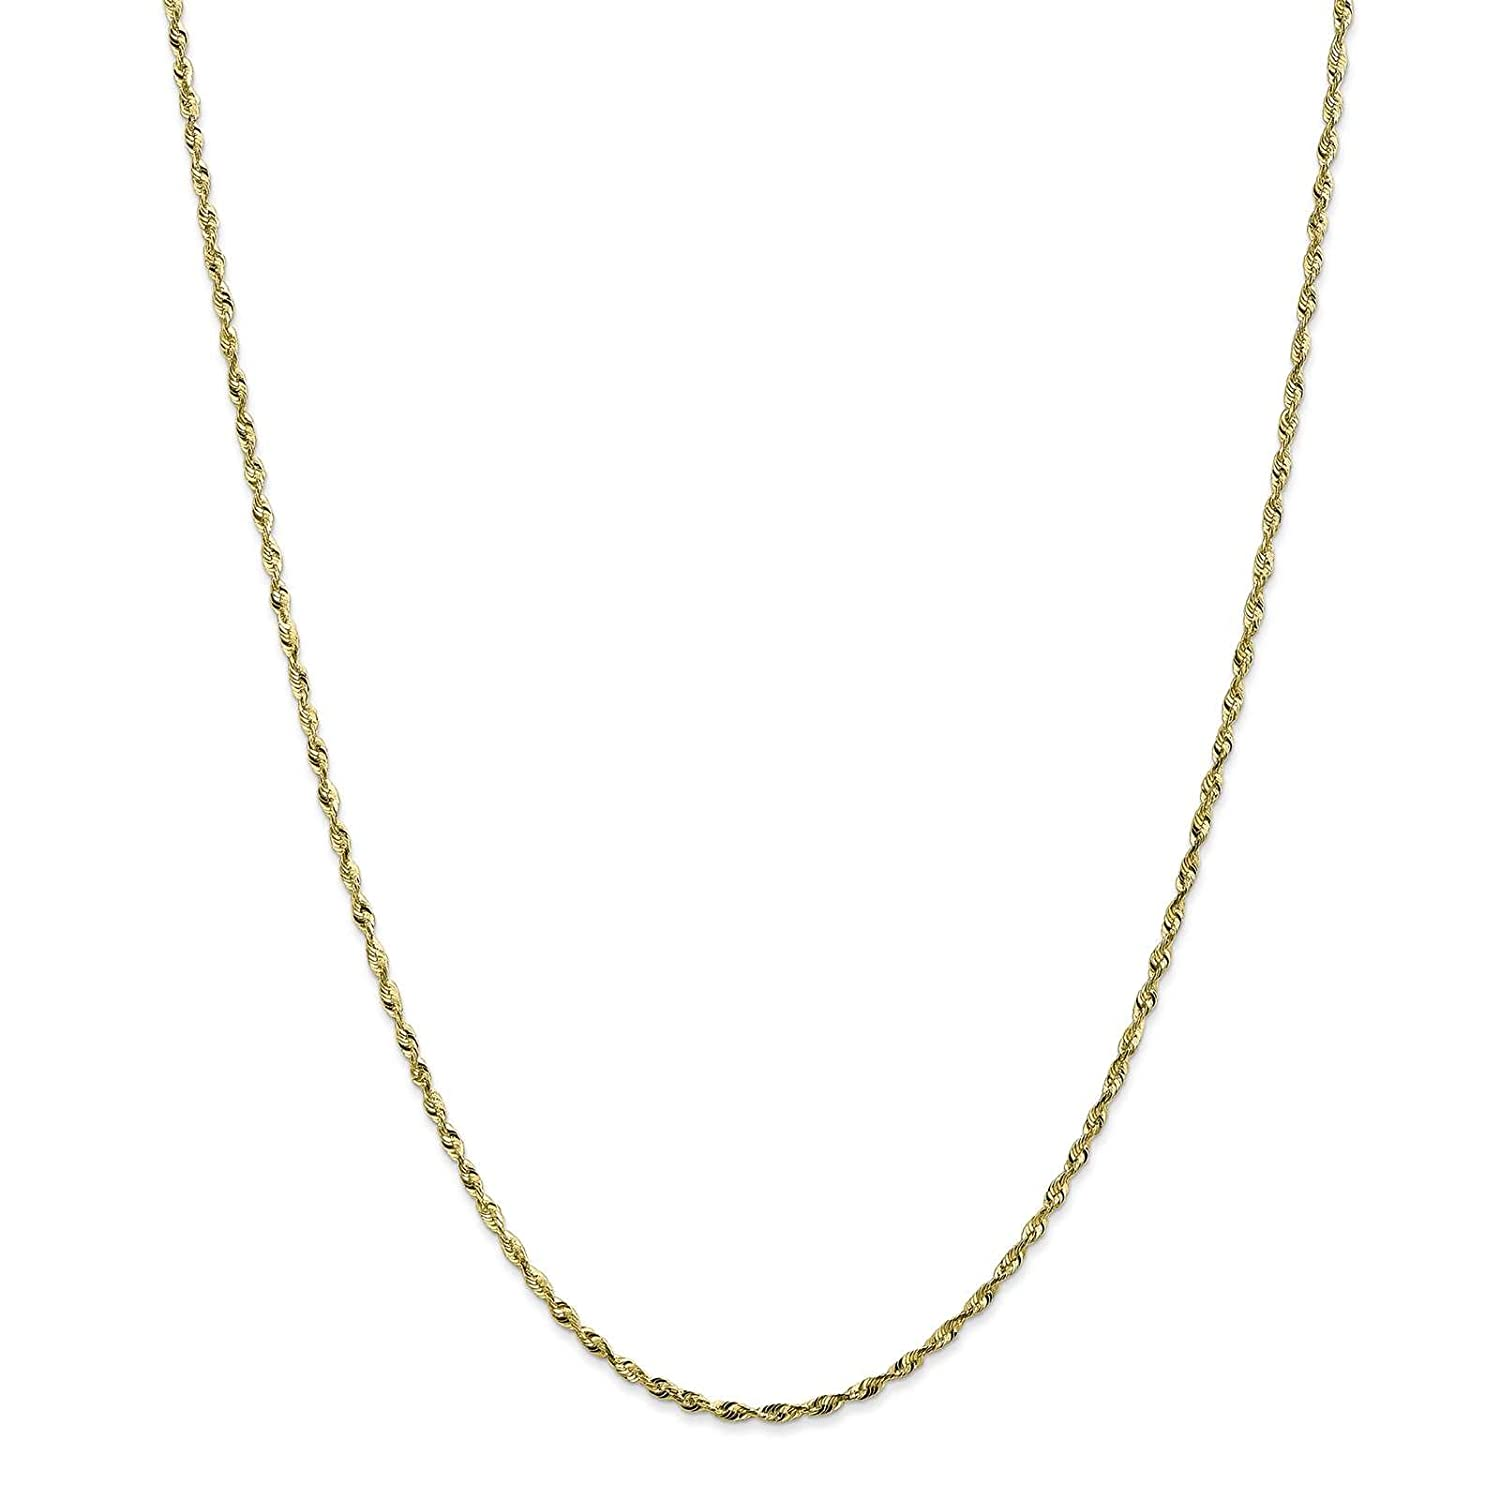 Leslies 10K Yellow Gold 1.8mm Lightweight Diamond-cut Rope Chain Bracelet 7-30